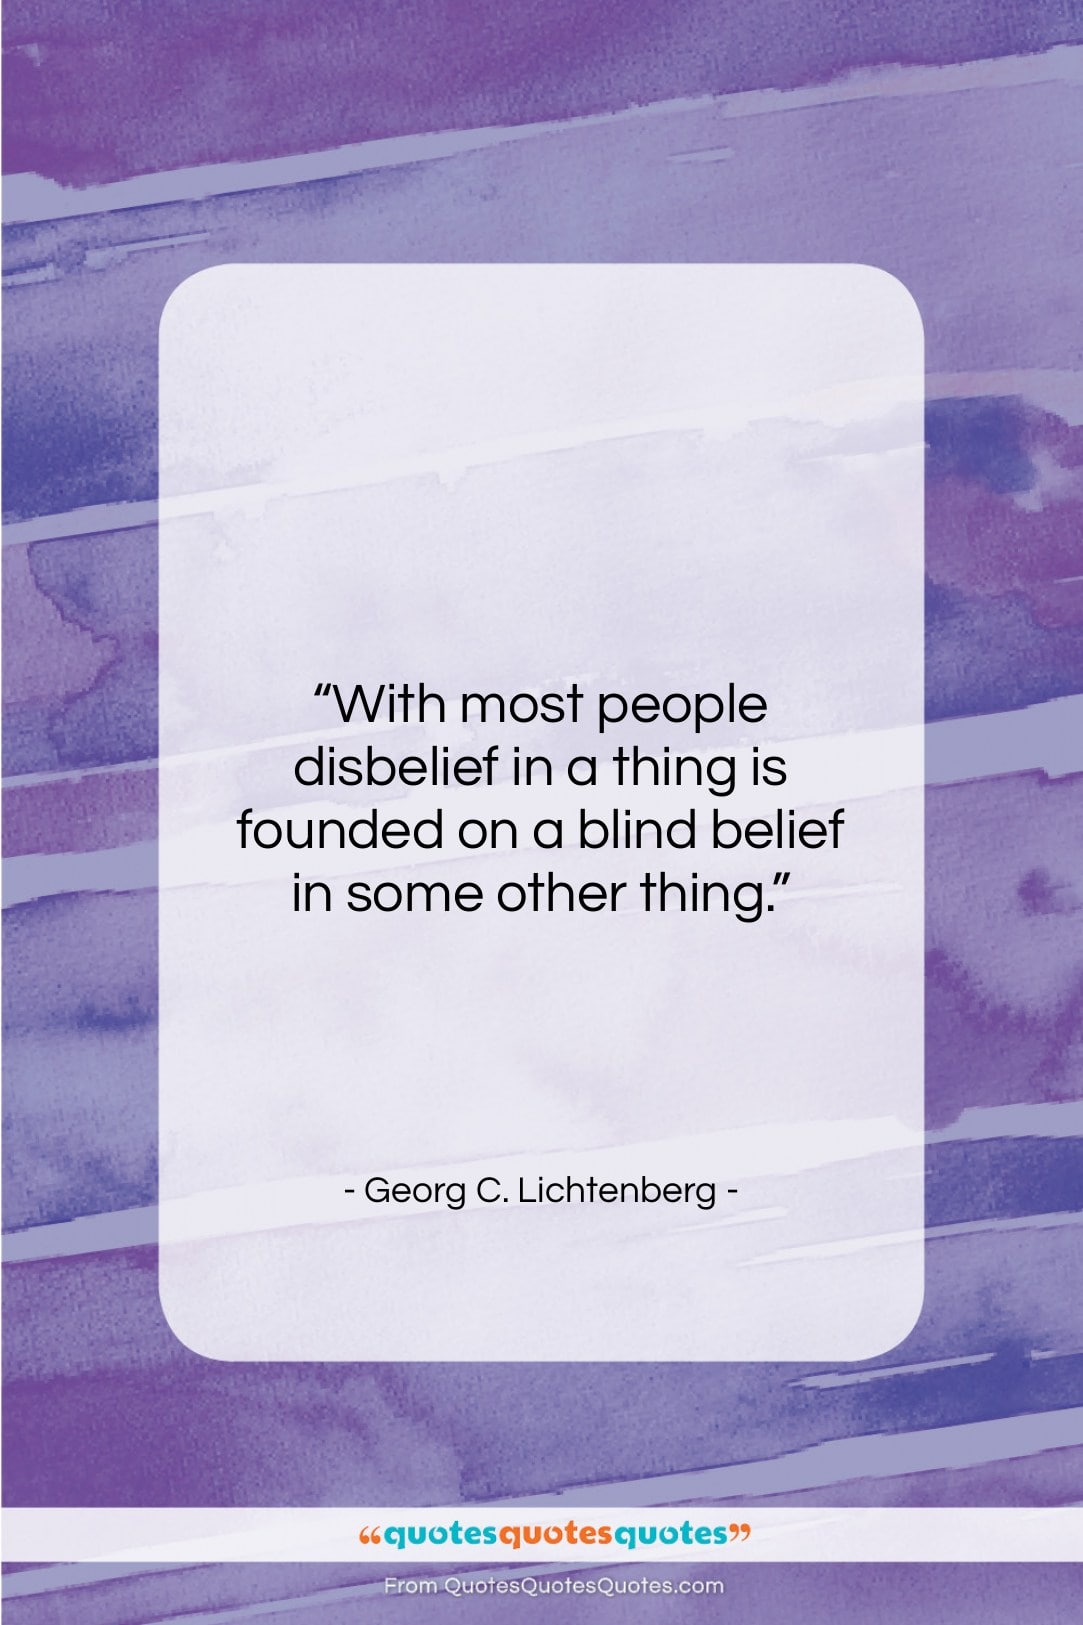 """Georg C. Lichtenberg quote: """"With most people disbelief in a thing…""""- at QuotesQuotesQuotes.com"""